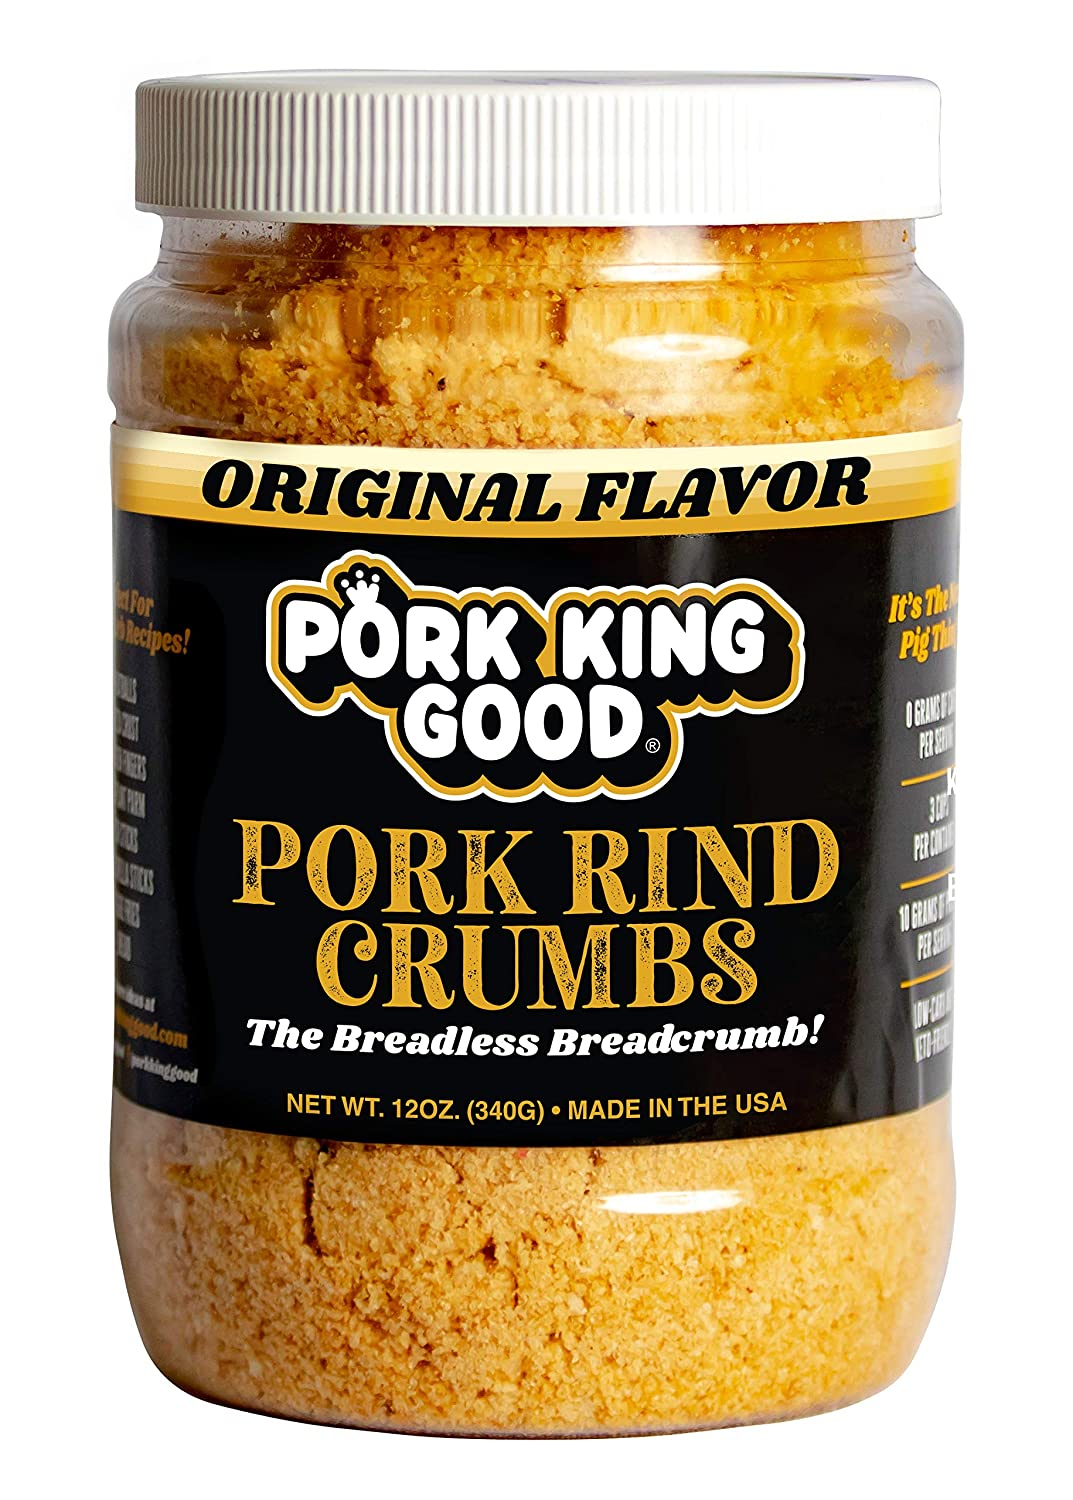 Amazon Com Pork King Good Low Carb Keto Diet Pork Rind Breadcrumbs Perfect For Ketogenic Paleo Gluten Free Sugar Free And Bariatric Diets Original Original 12 Oz Jar Grocery Gourmet Food